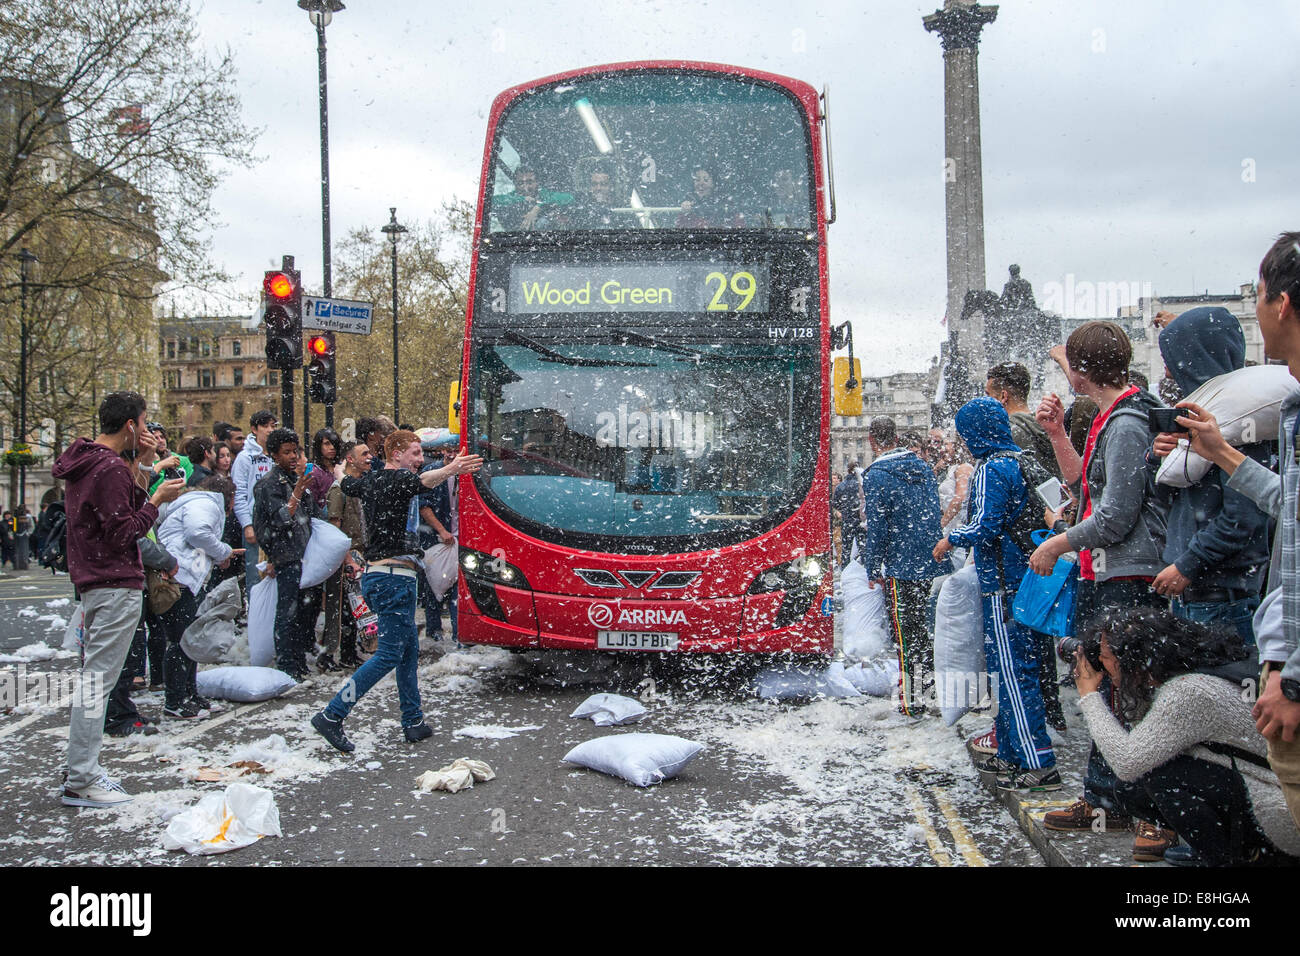 A bus drives through the commotion as Londoners pillow fight in the street around Trafalgar Square during International - Stock Image